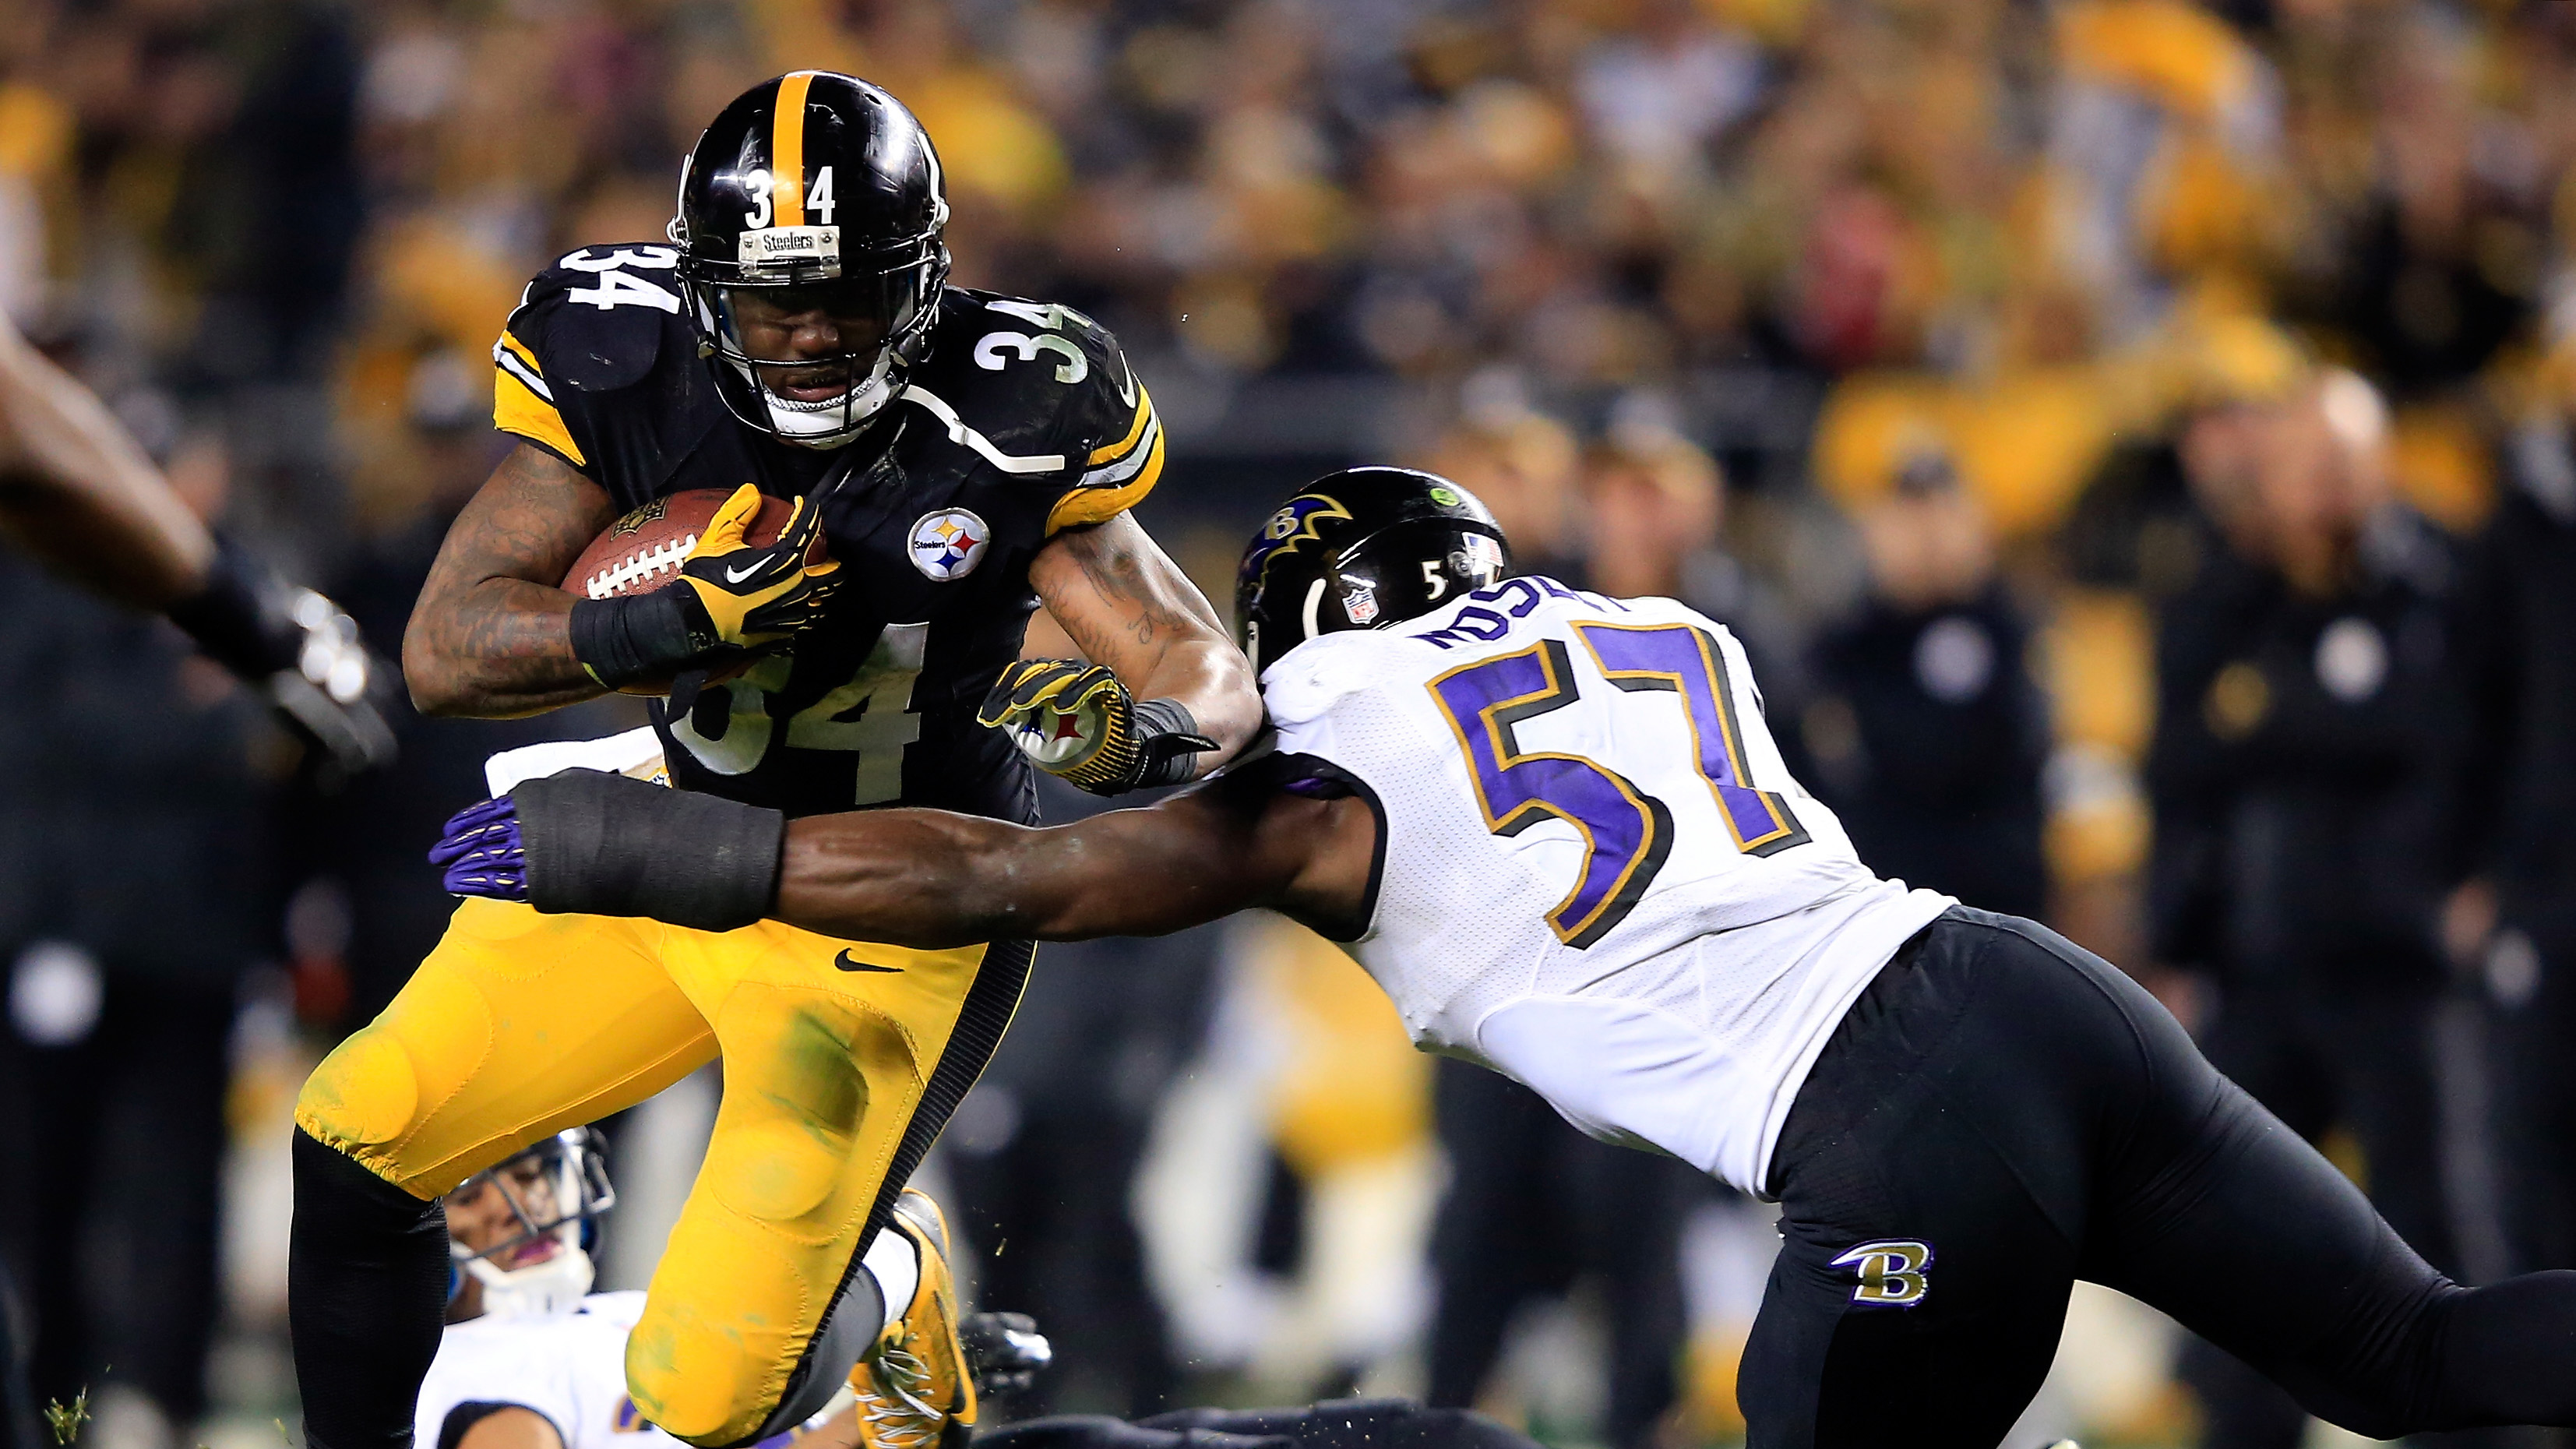 Ben Tate played for the Steelers in the playoffs last season.